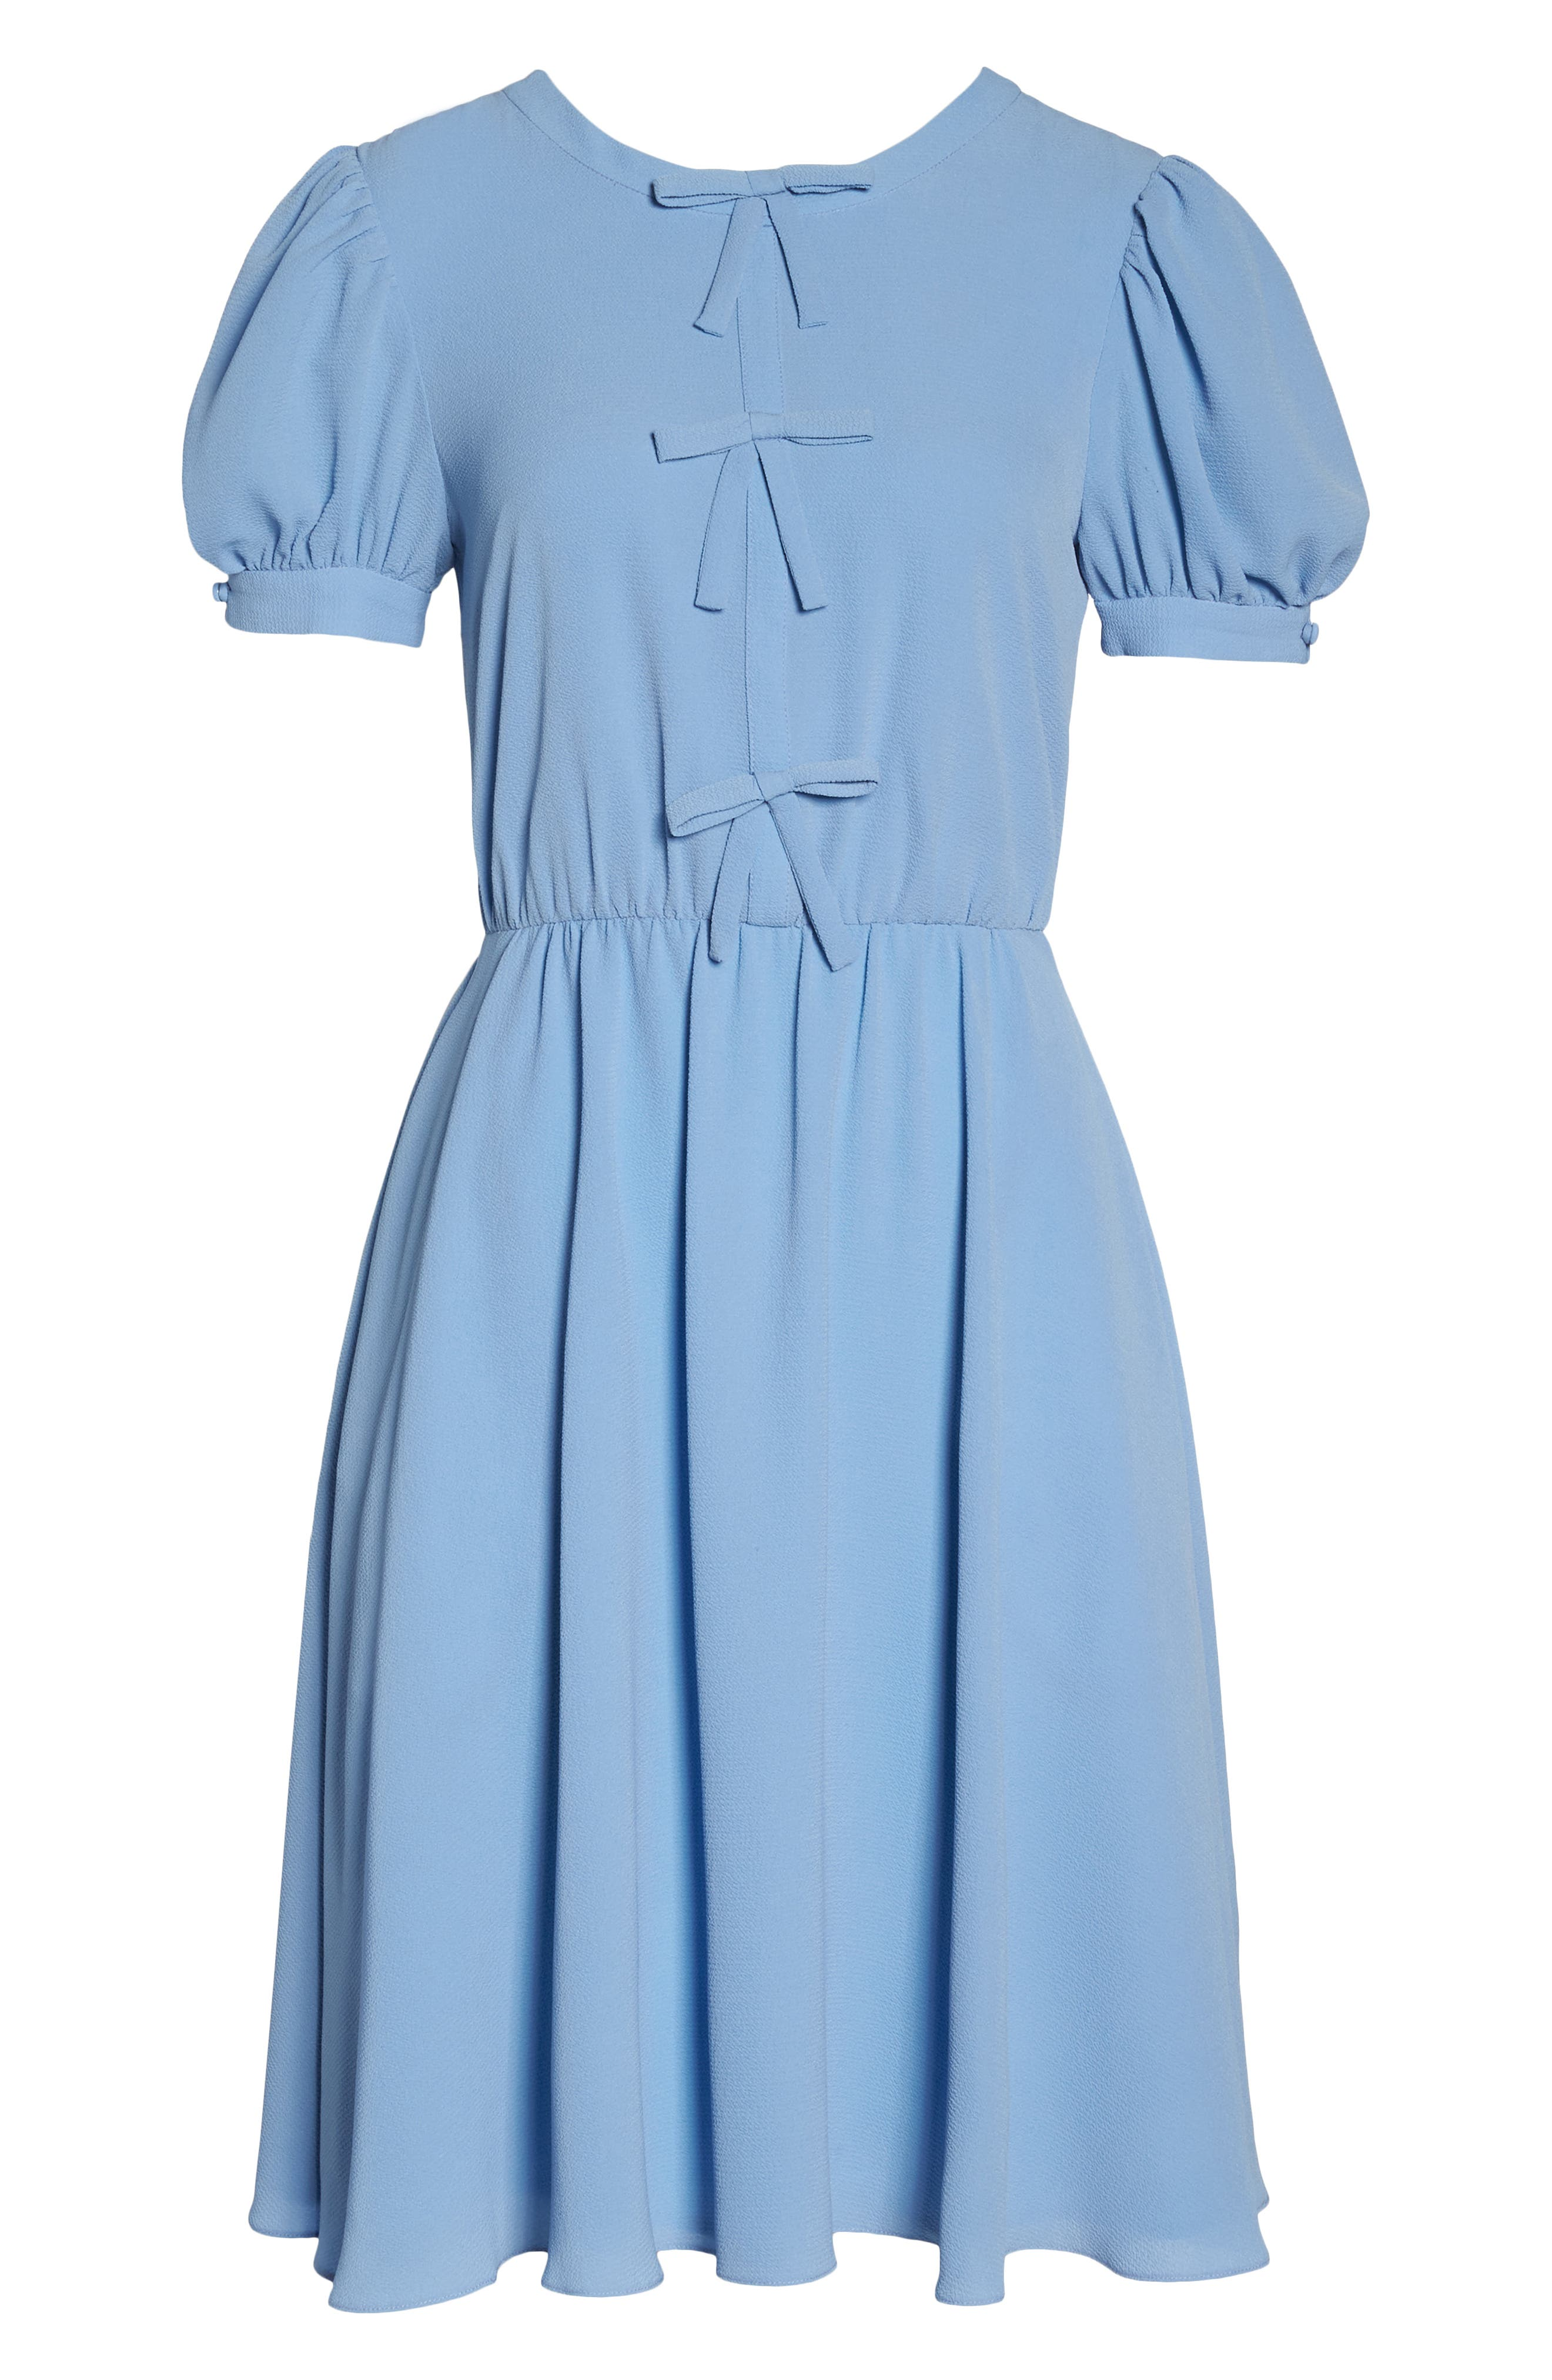 Ellie Crepe Puff Sleeve Dress,                             Alternate thumbnail 8, color,                             Sky Blue